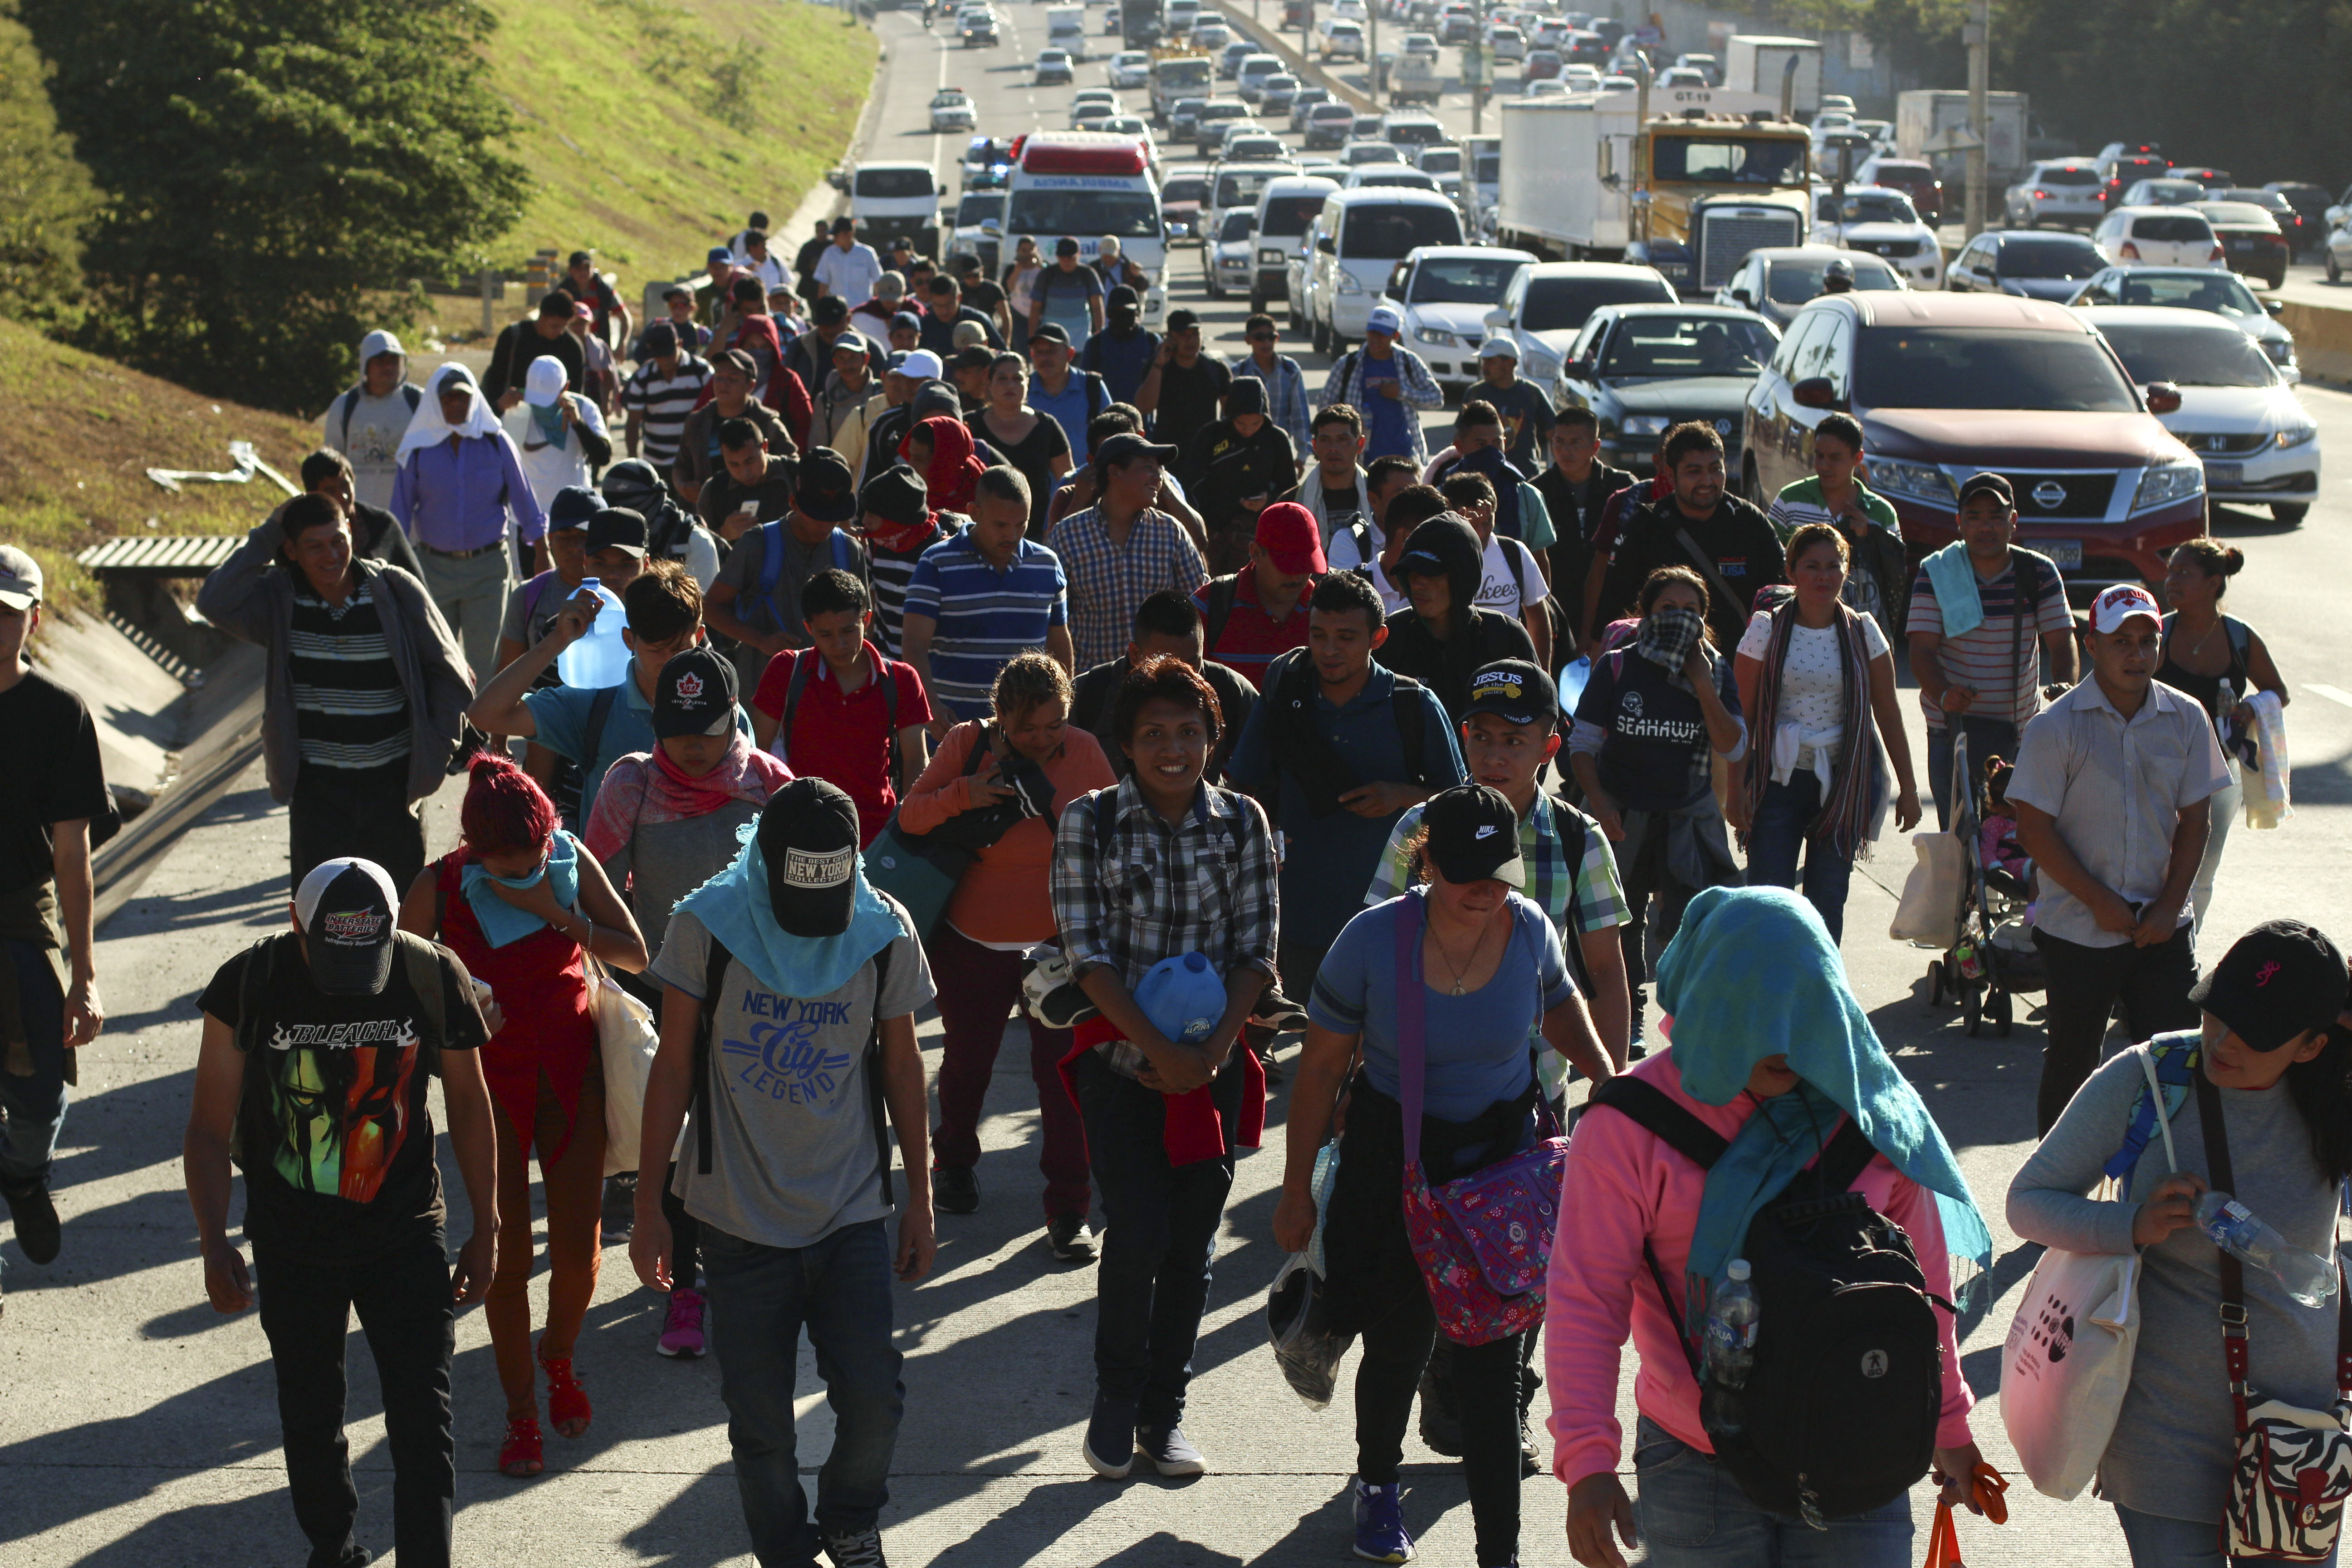 Migrants traveling in a group begin their journey toward the U.S. border as they walk along a highway in San Salvador, El Salvador, early Wednesday, Jan. 16, 2019. Migrants fleeing Central America's Northern Triangle region comprising Honduras, El Salvador and Guatemala routinely cite poverty and rampant gang violence as their motivation for leaving. (AP Photo/Salvador Melendez)